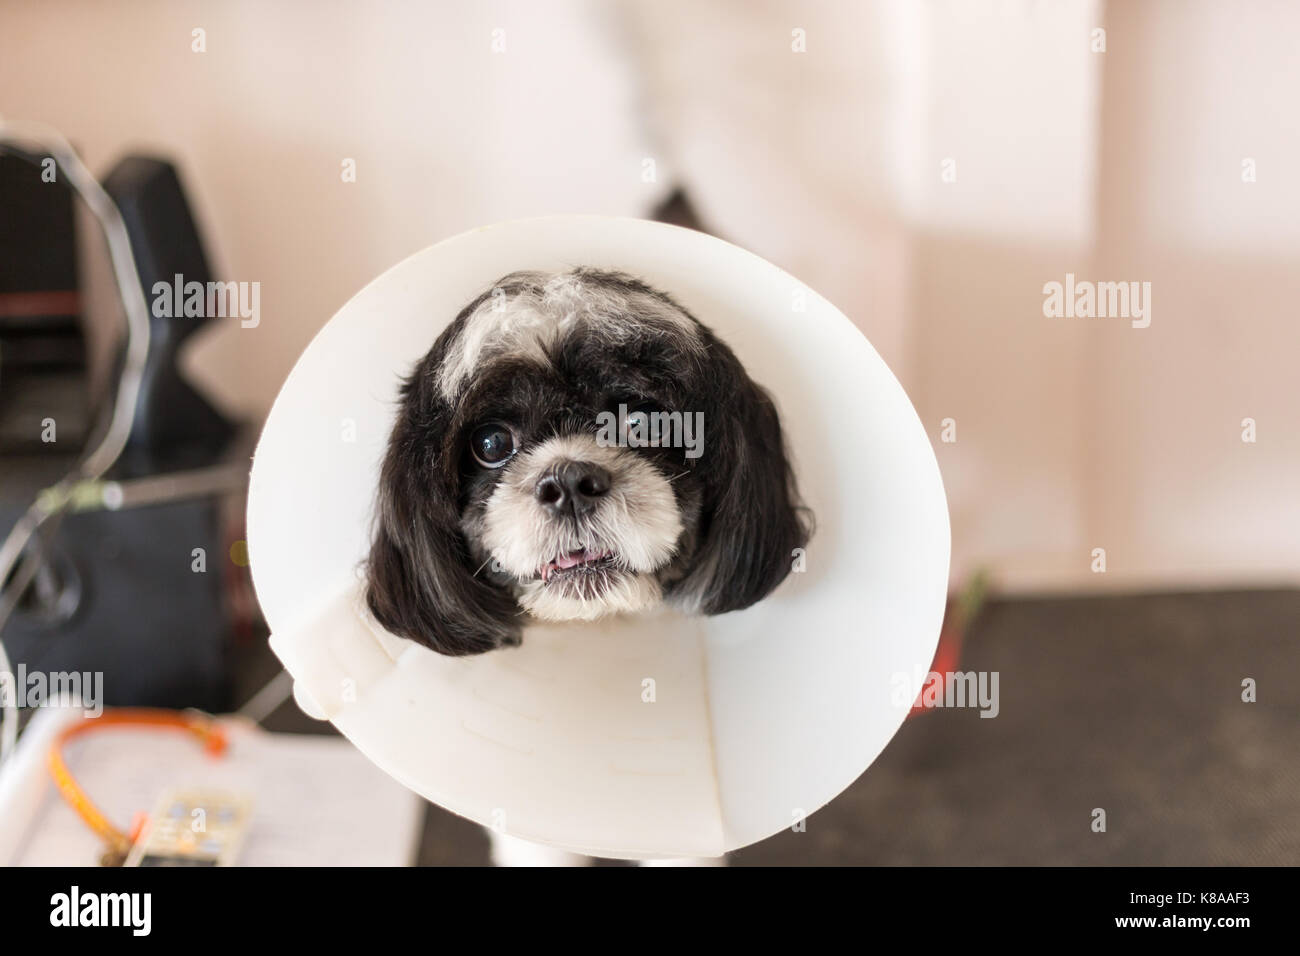 Little dog wearing a lampshade collar - Stock Image